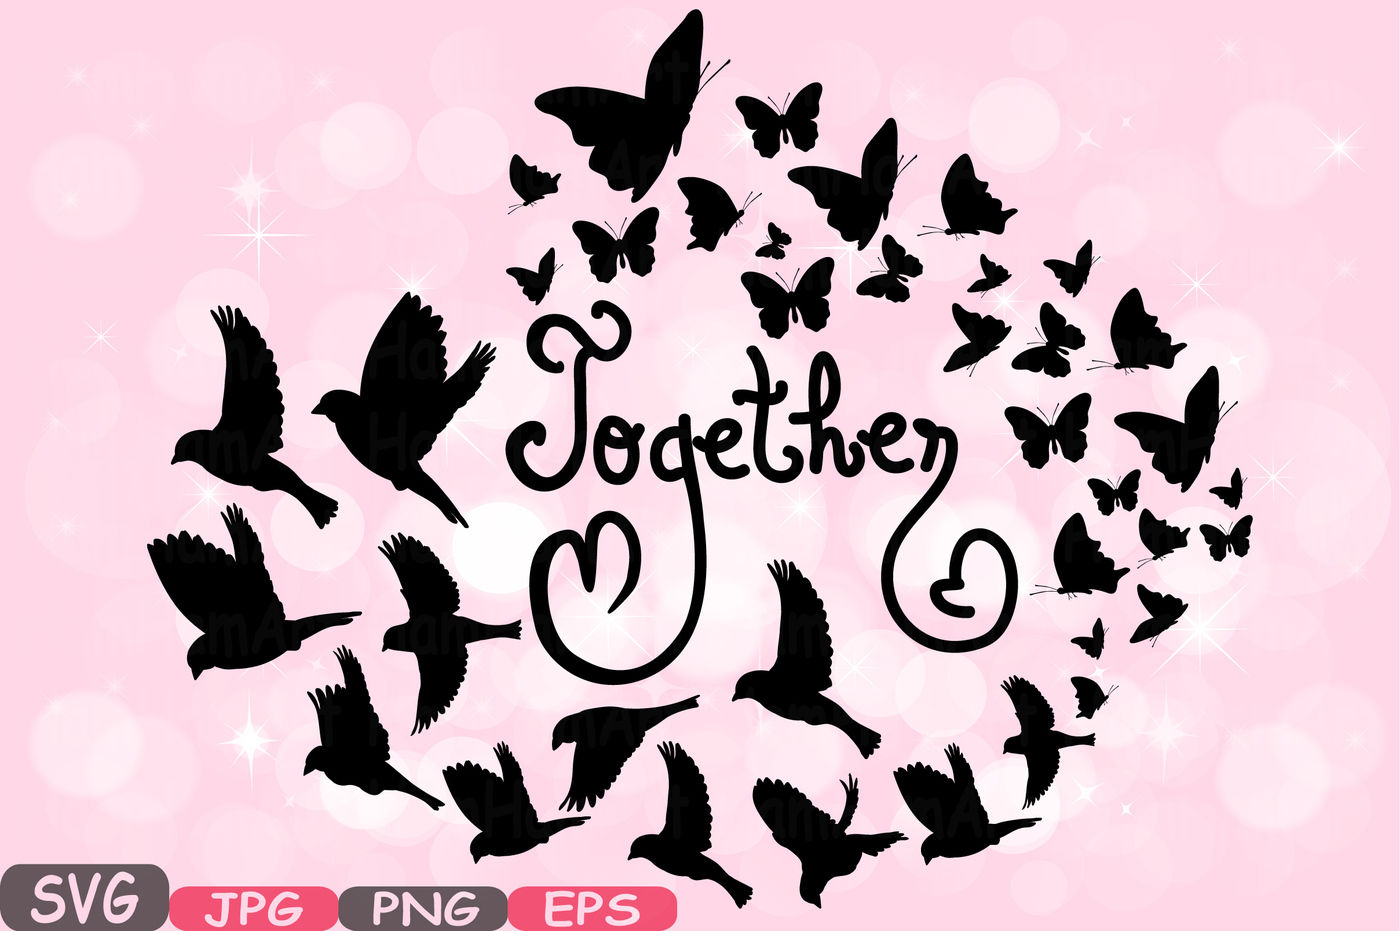 Clipart love family picture library download Together Family birds & Butterflies butterfly Silhouette Digital ... picture library download